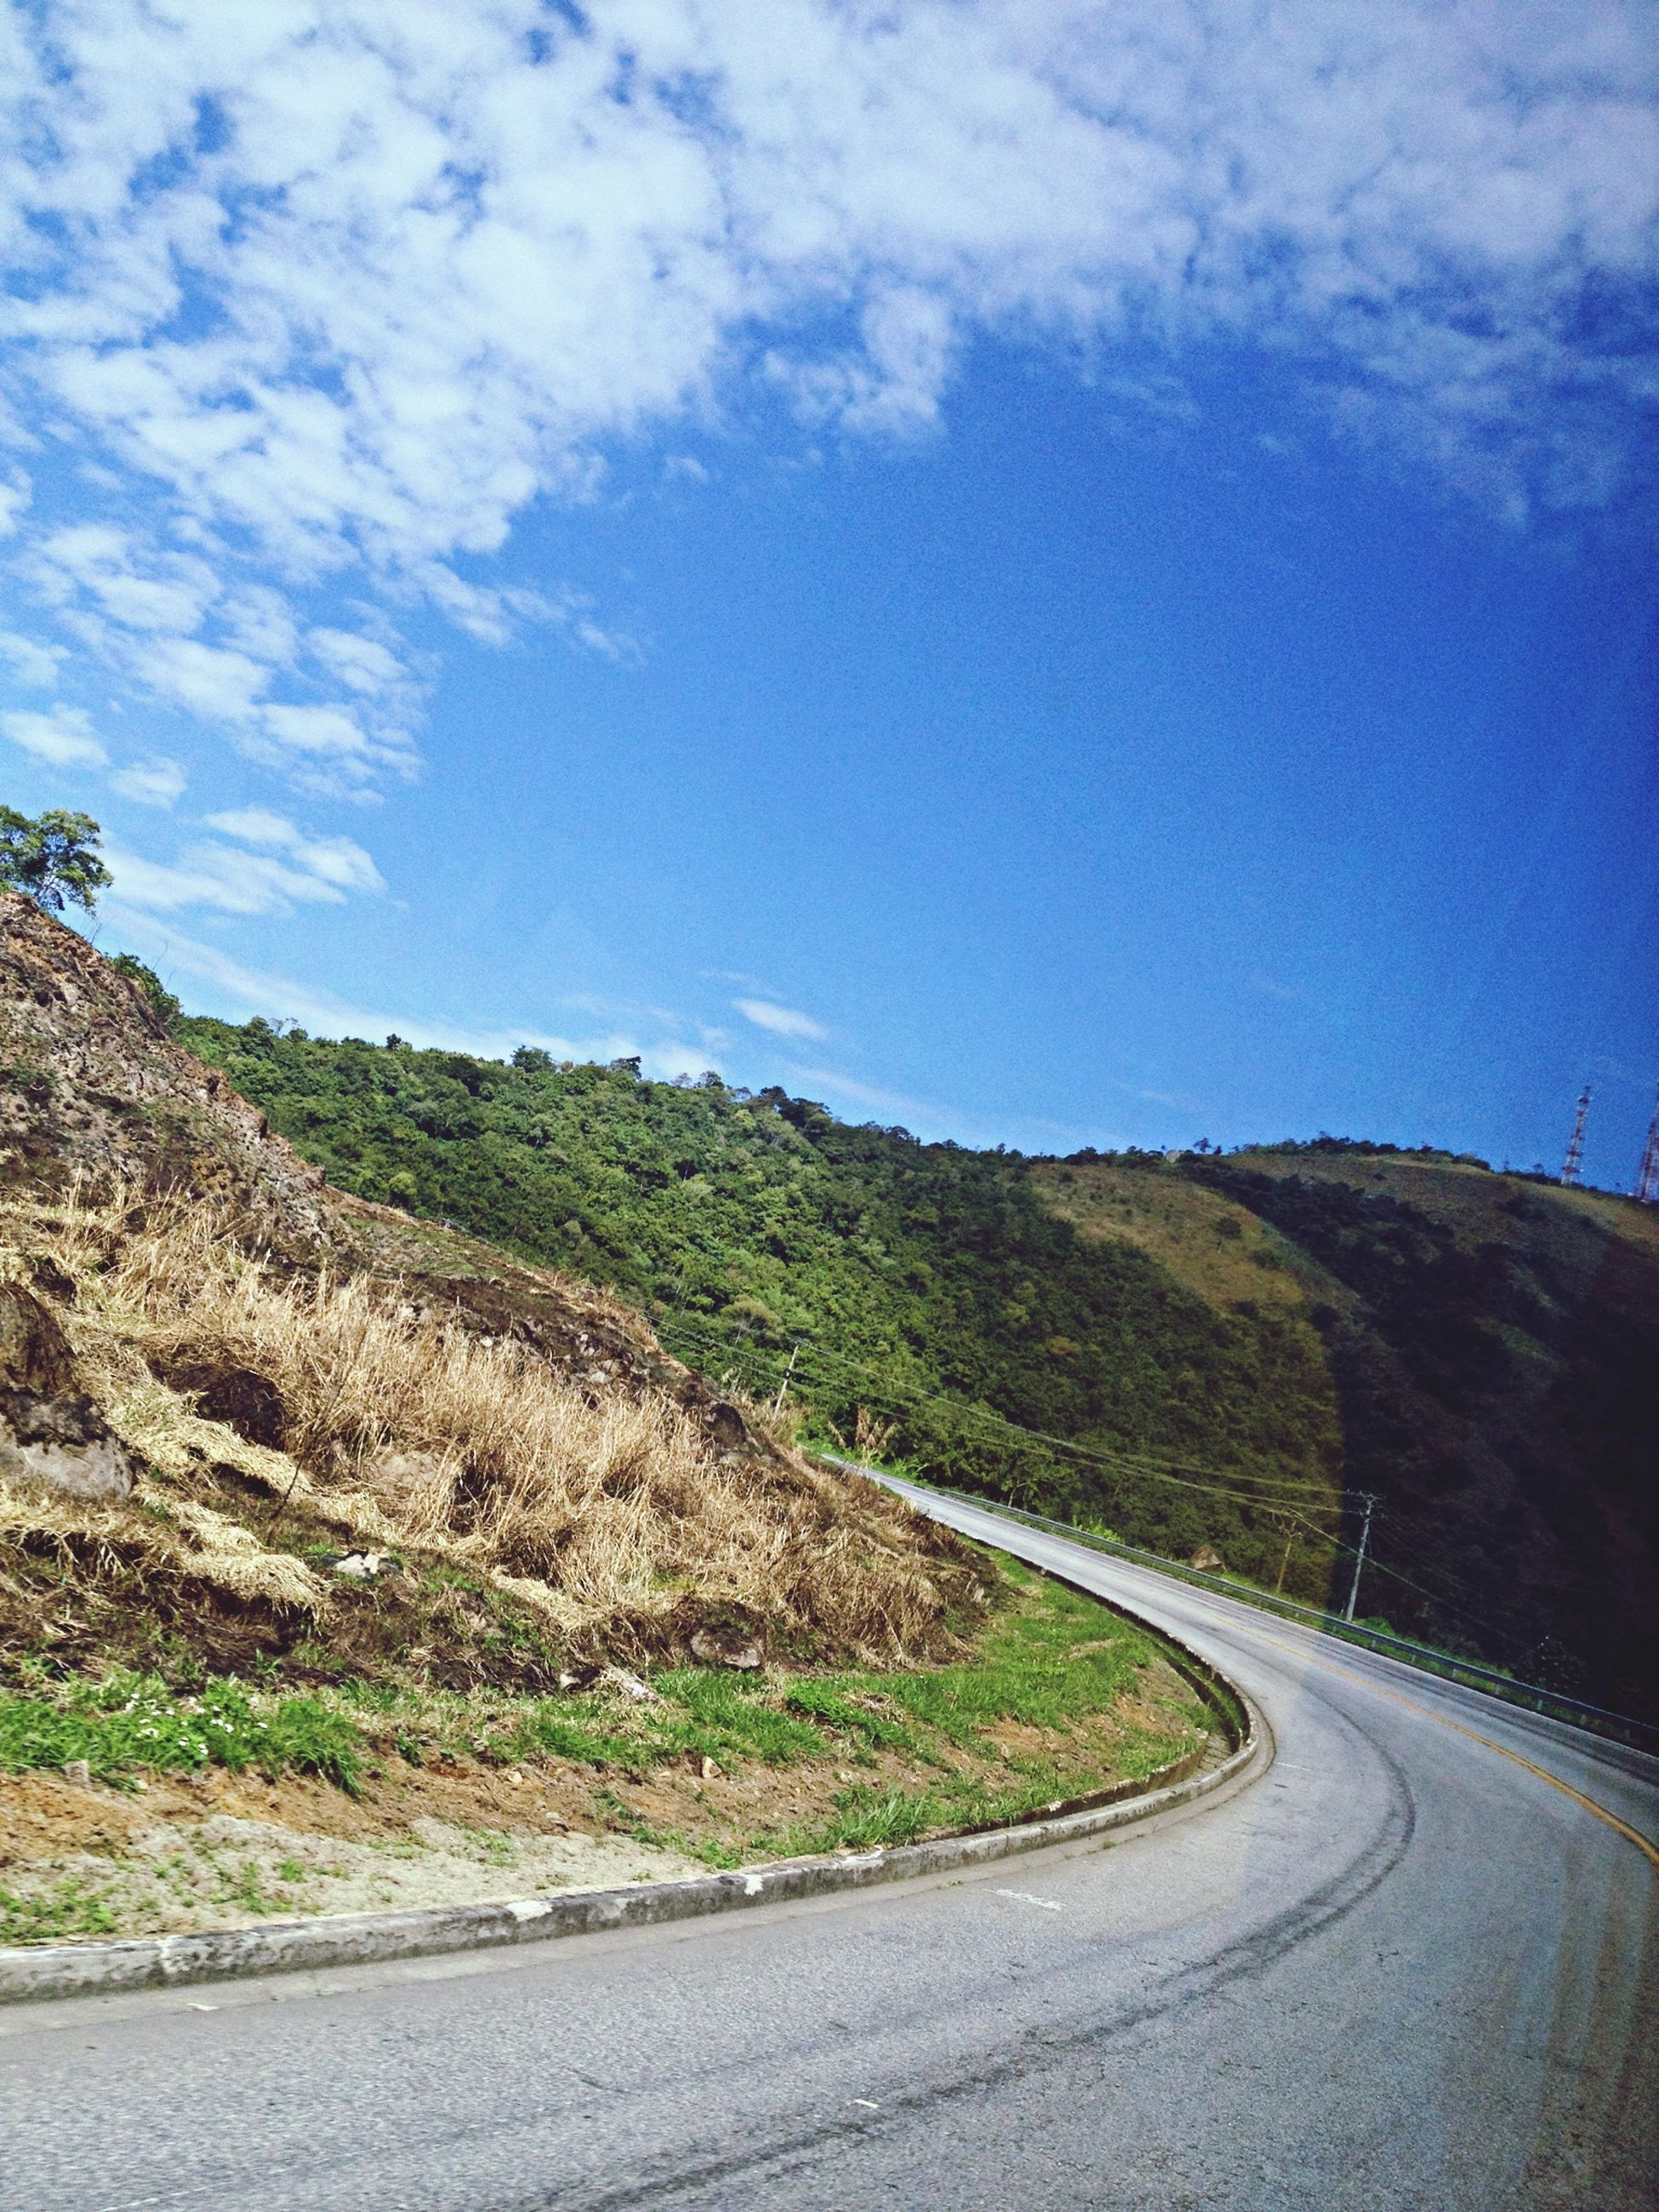 road, the way forward, transportation, sky, country road, road marking, landscape, tranquil scene, tranquility, mountain, diminishing perspective, empty road, scenics, cloud - sky, vanishing point, nature, cloud, empty, beauty in nature, countryside